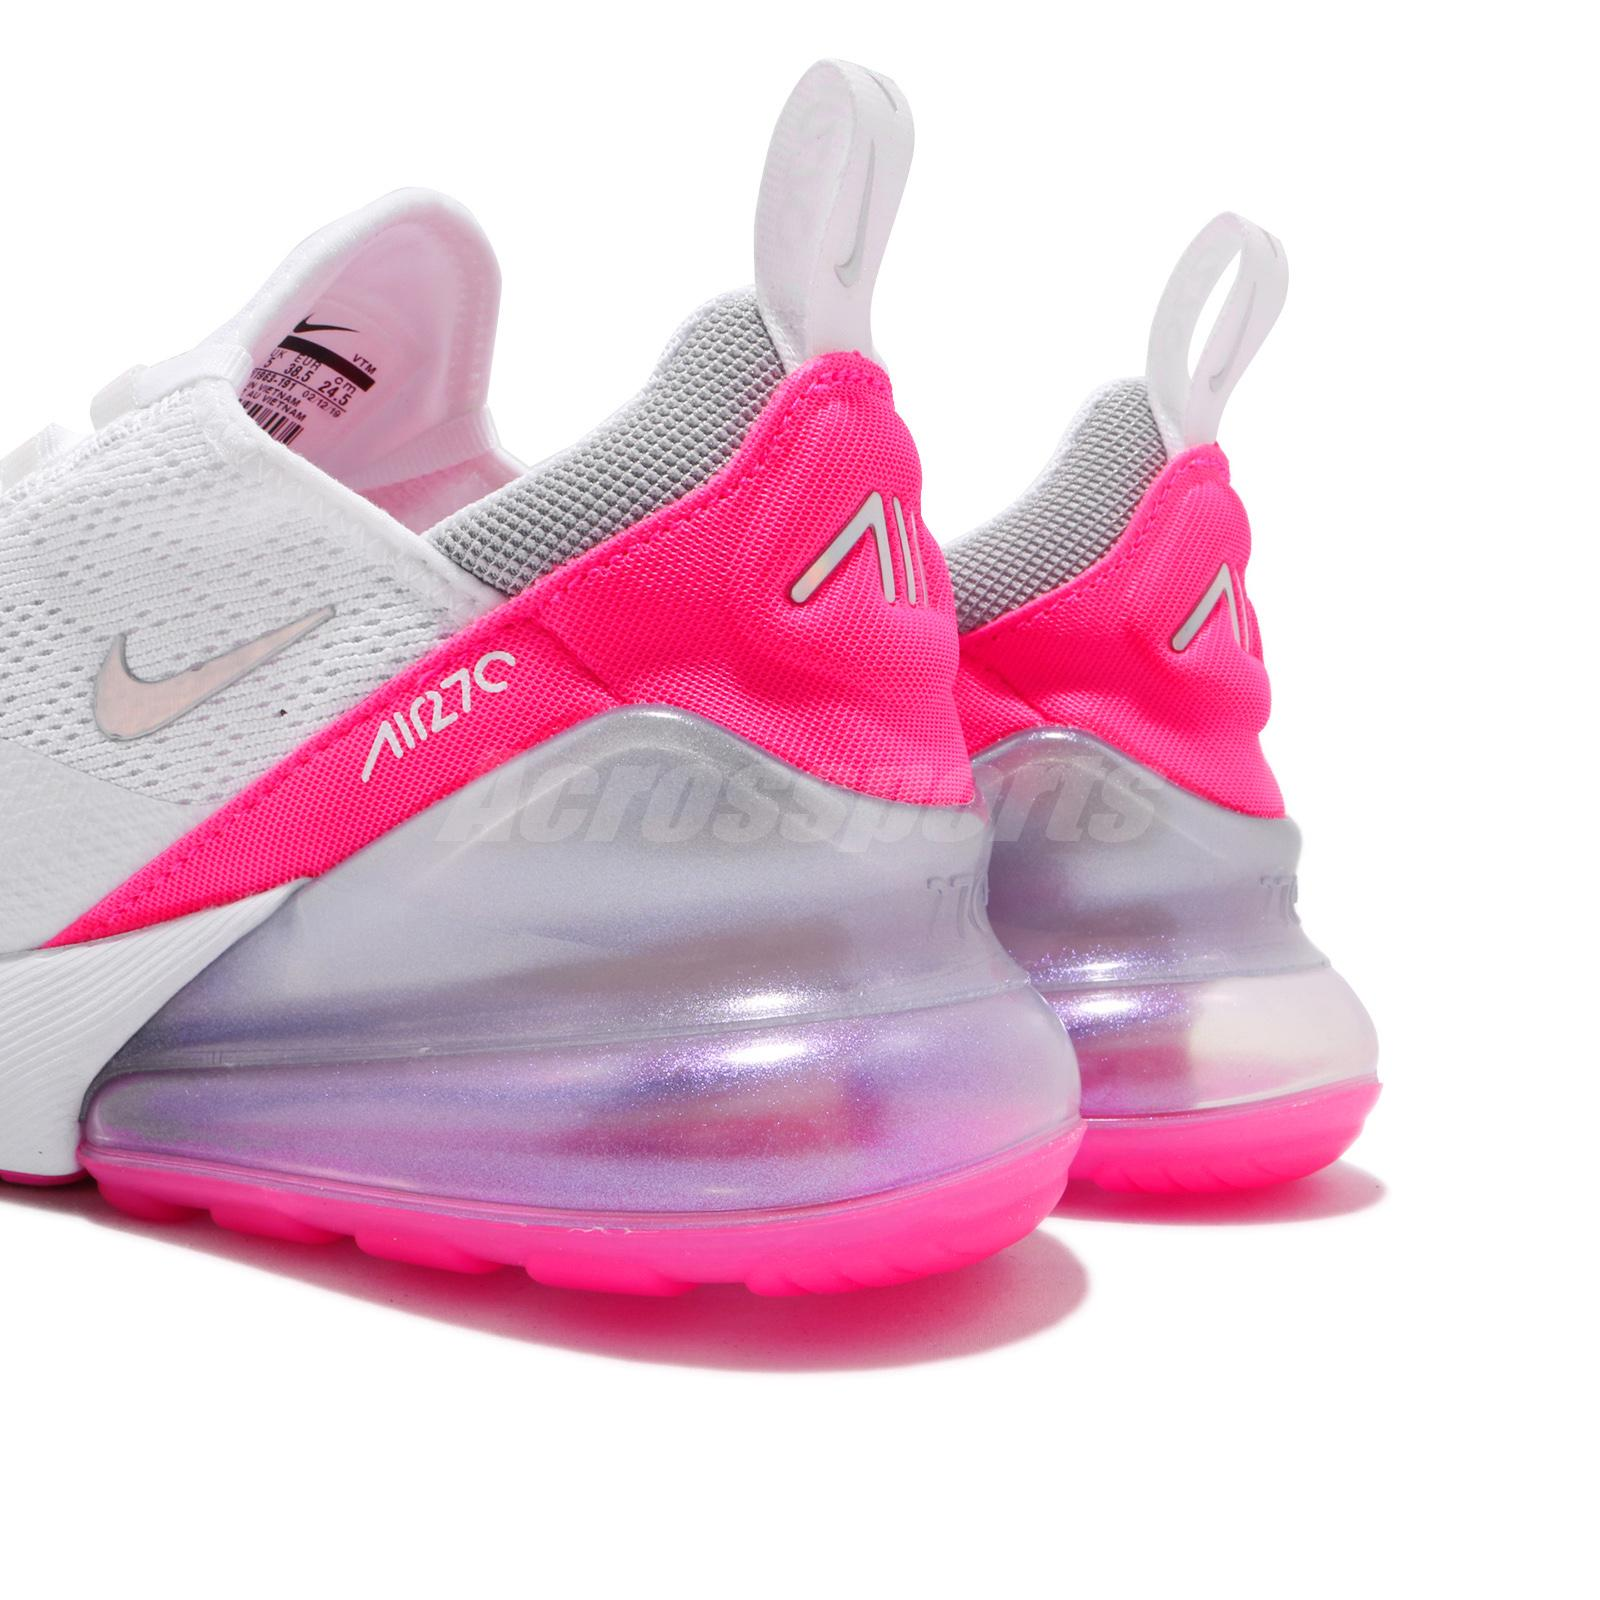 Air Max 270 Pink And White chairsofters.co.uk liefert Air